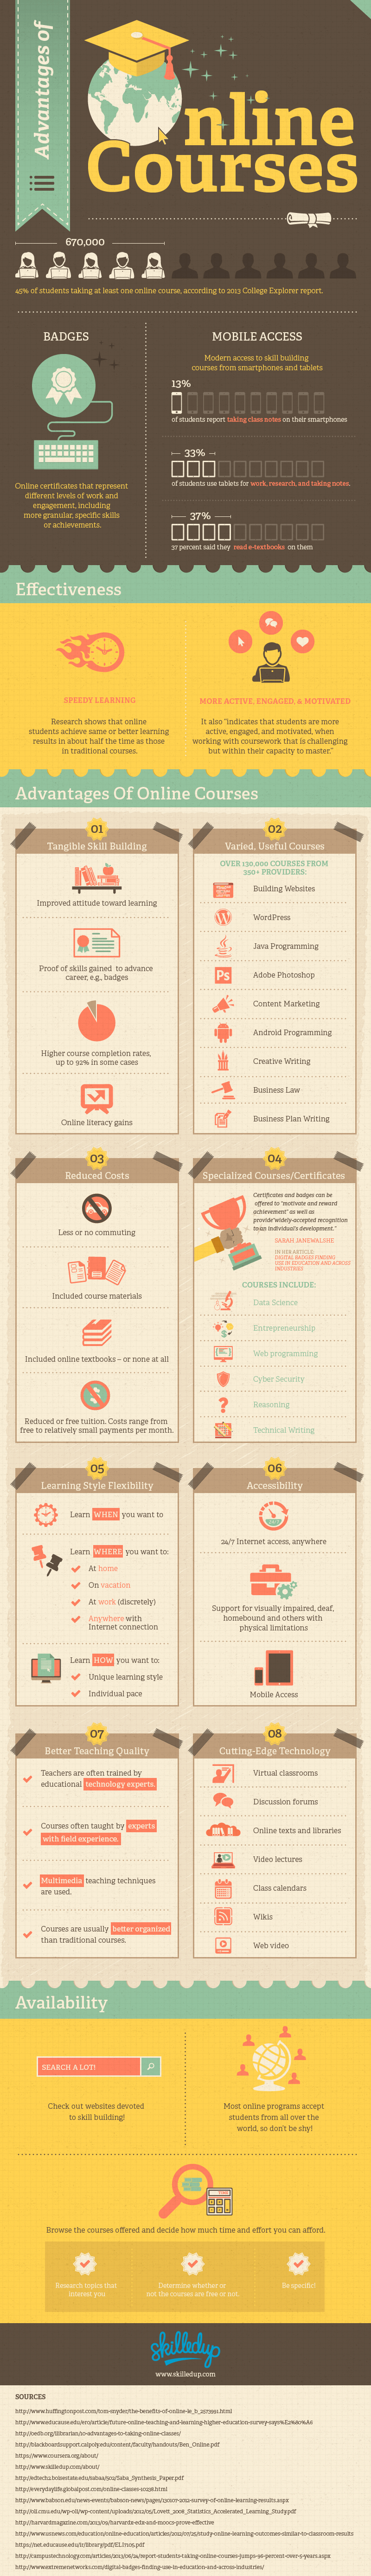 The-Advantages-of-Online-Courses-Infographic